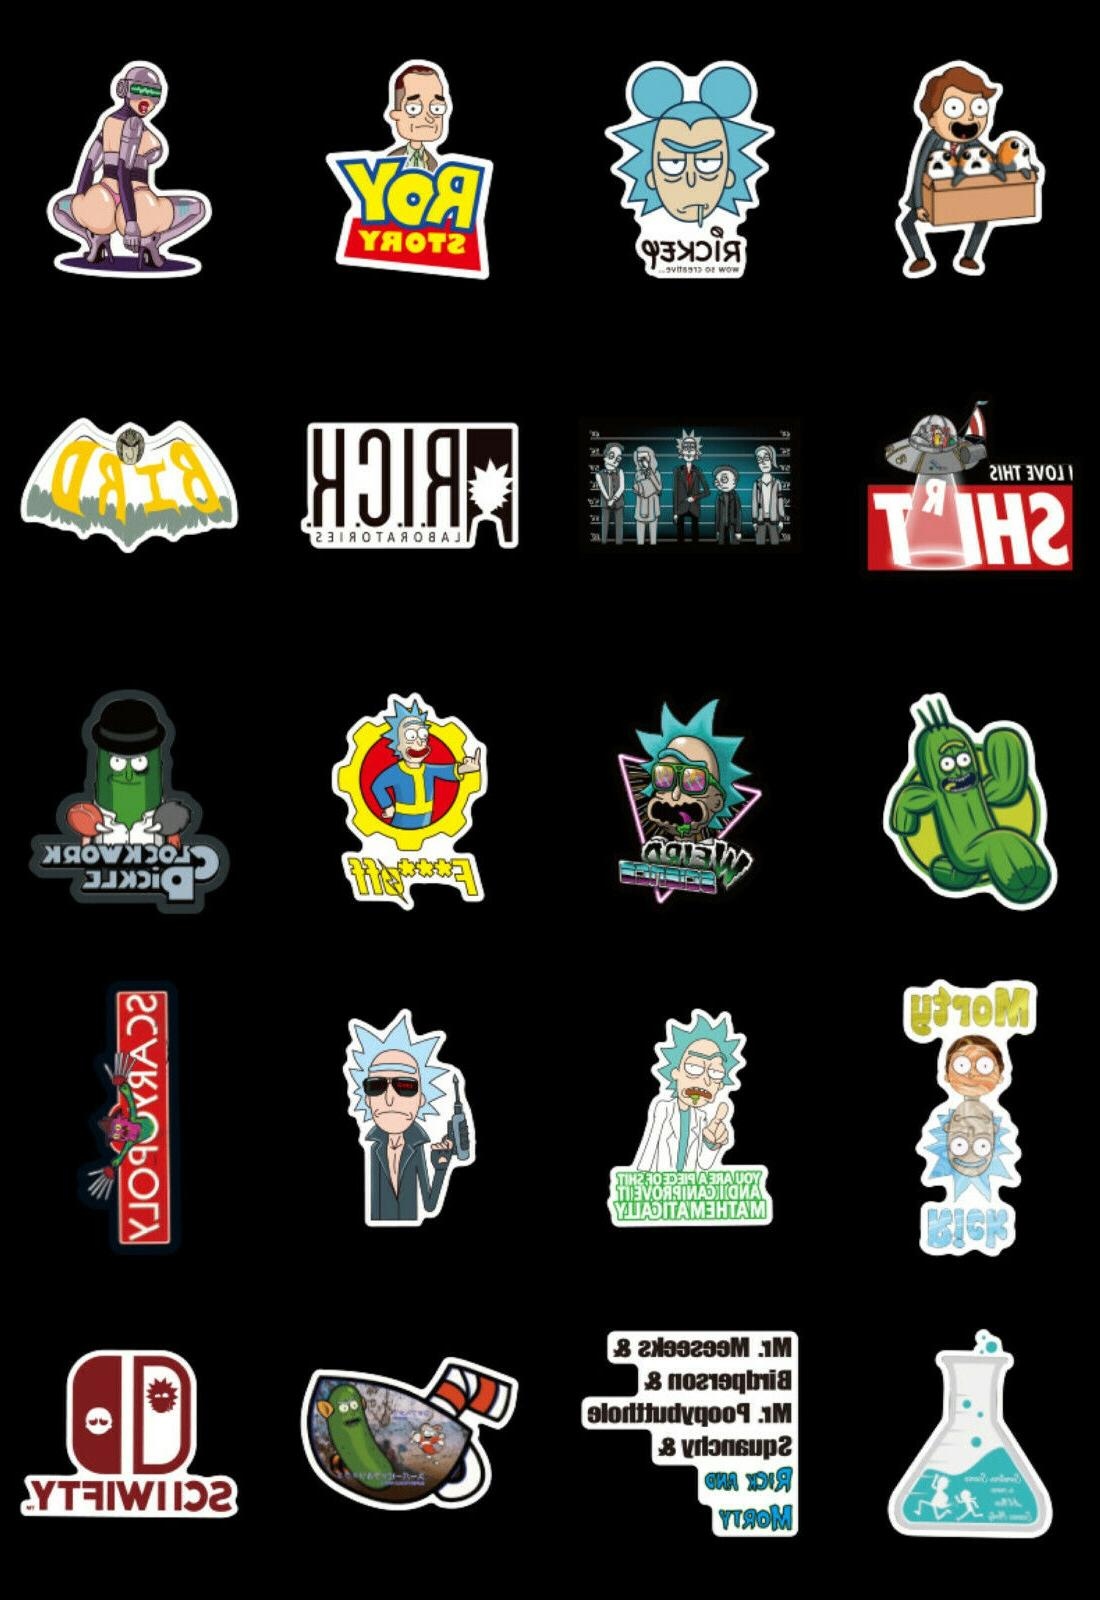 100pcs vinyl Stickers Character Stickers, USA SHIPPING!